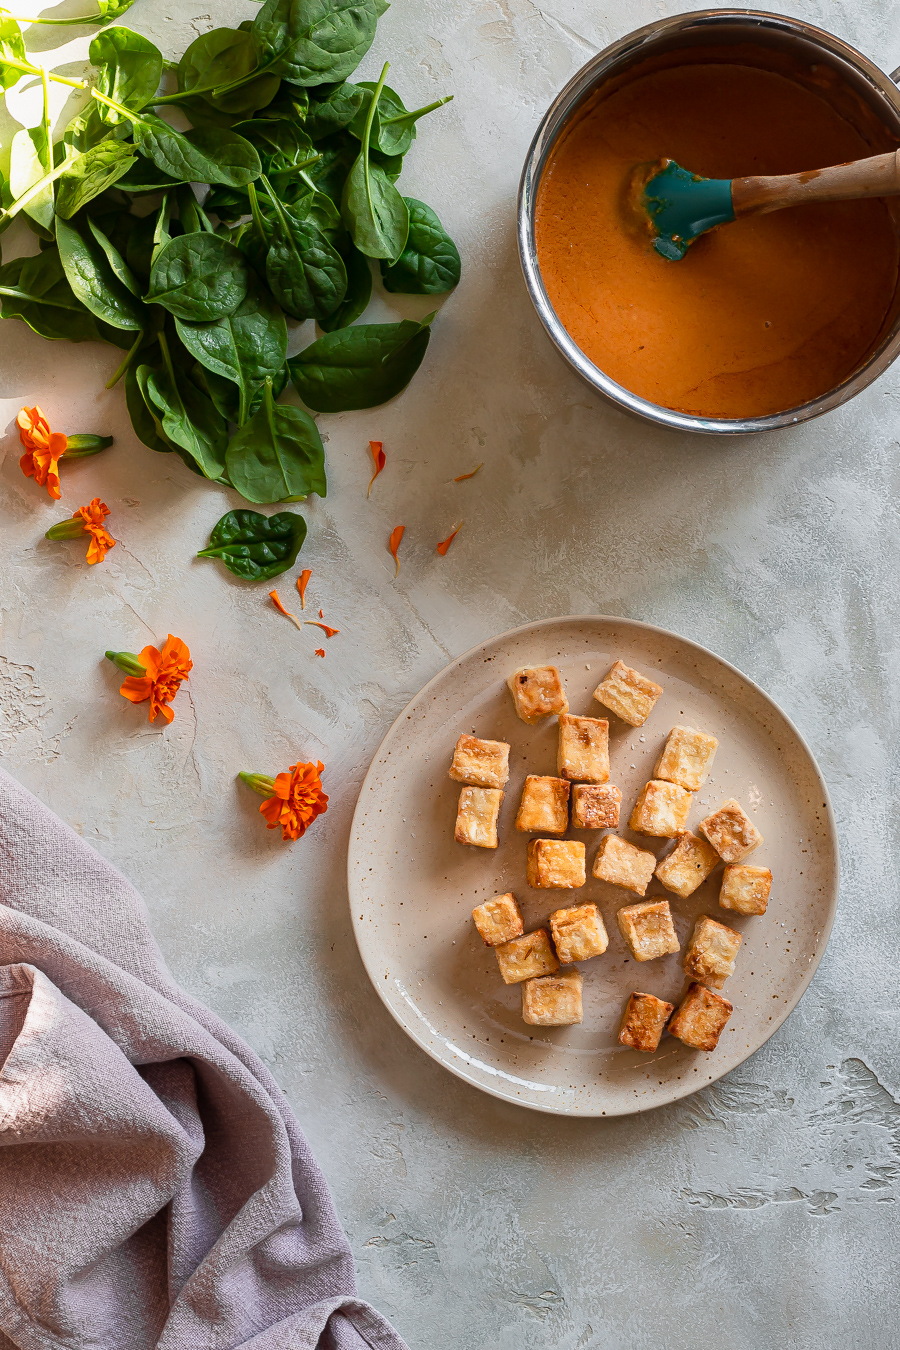 crispy pan-fried tofu cubes on a plate with a bowl of Thai peanut sauce and a pile of spinach leaves in the background